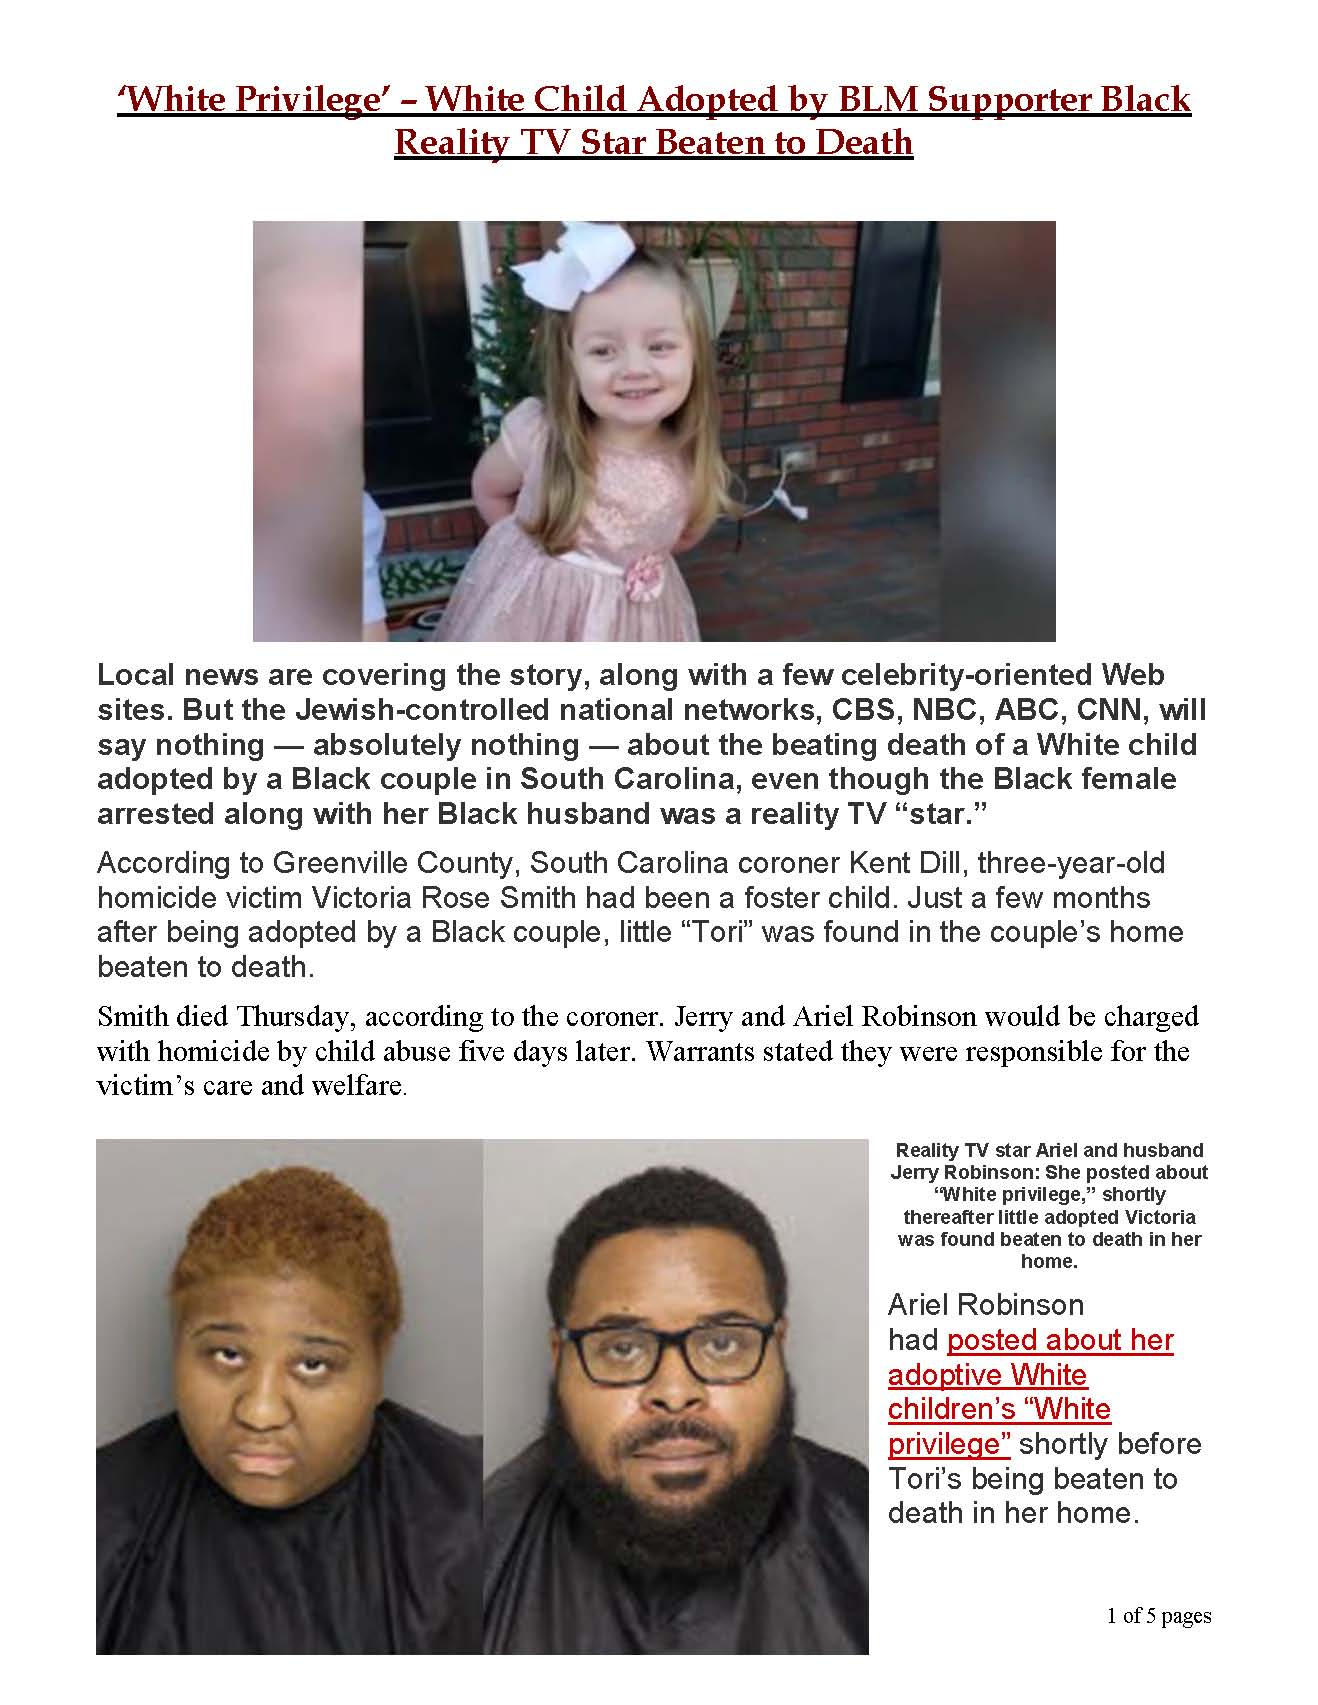 'White Privilege' – White Child Adopted by BLM Supporter Black Reality TV Star Beaten to Death_Page_1